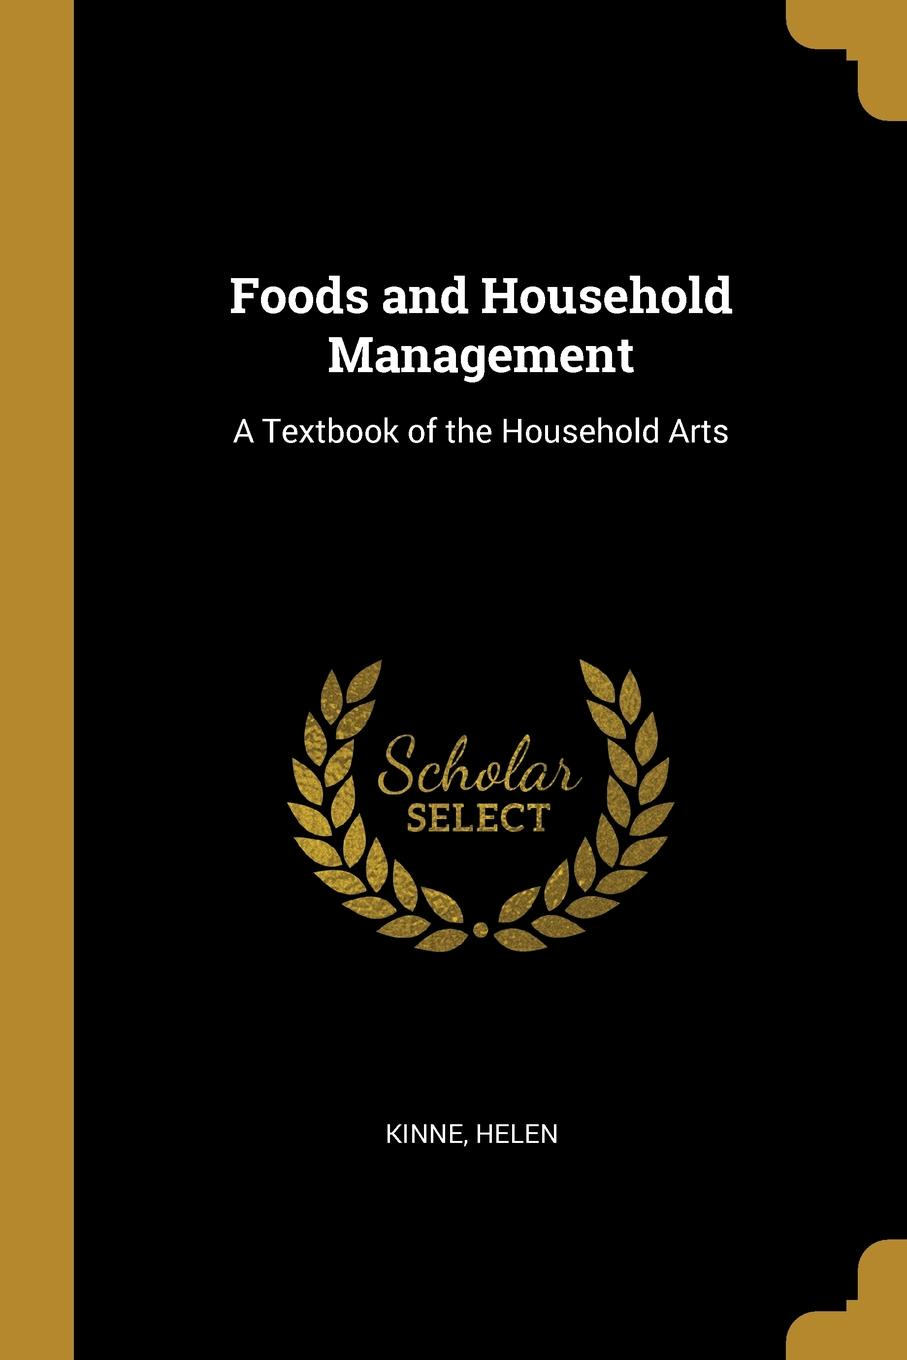 Kinne Helen. Foods and Household Management. A Textbook of the Household Arts